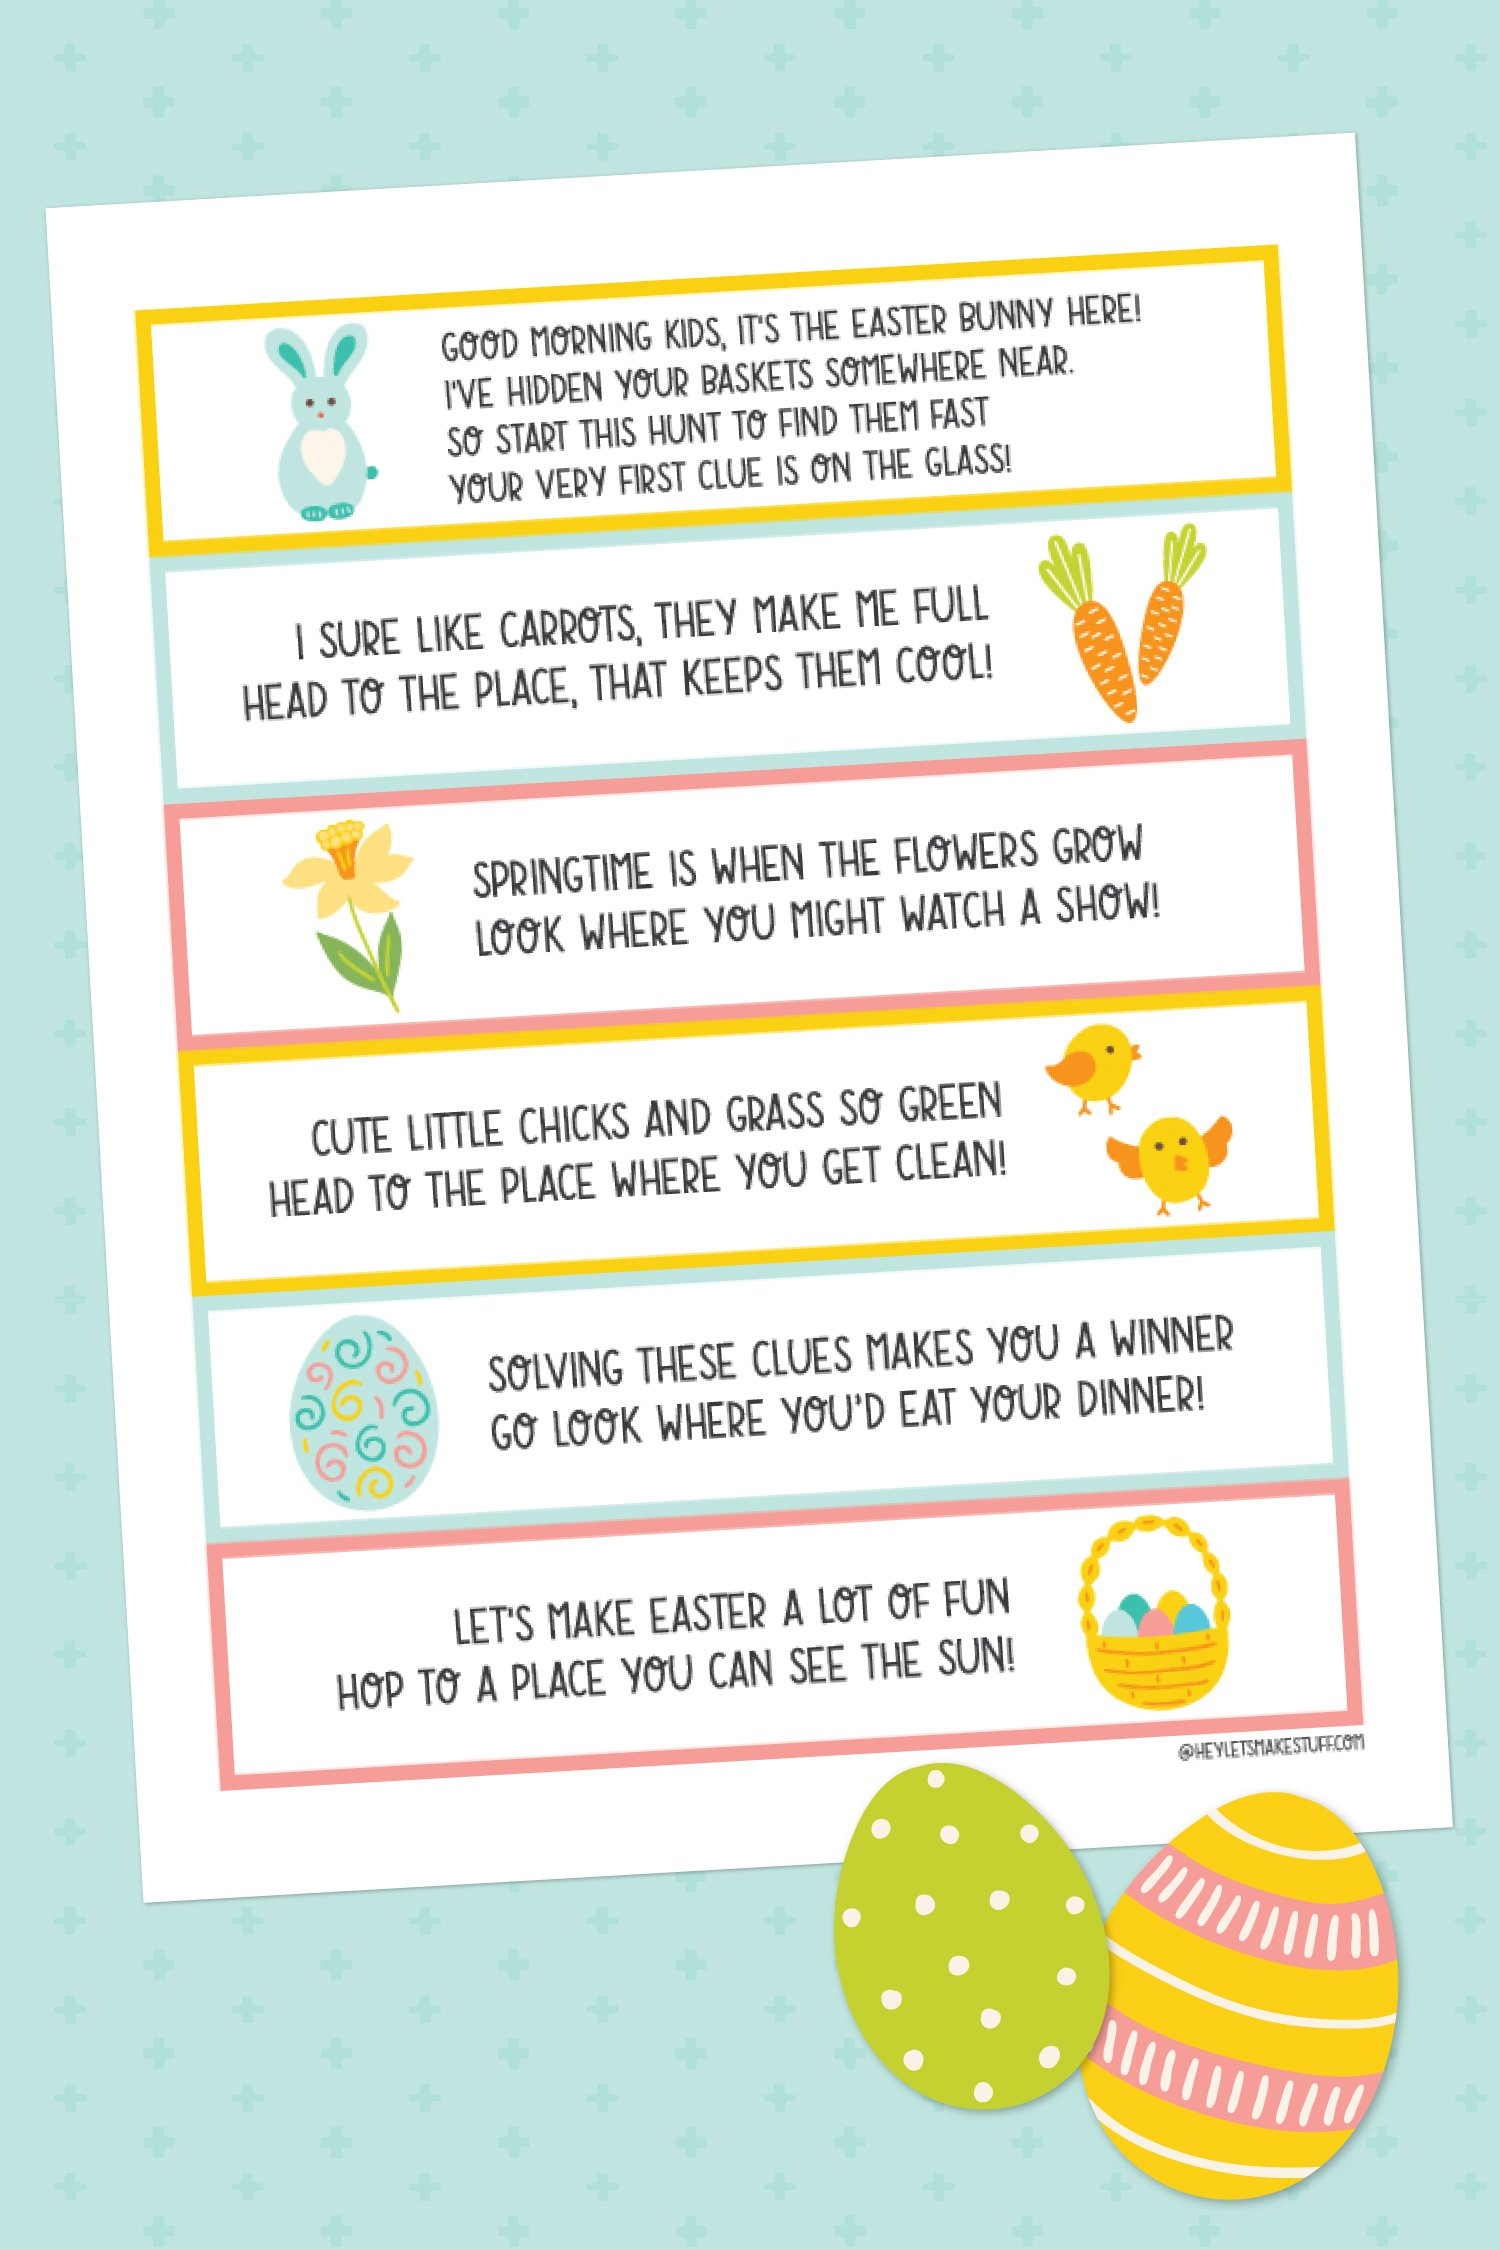 Grab this free Easter basket scavenger hunt to send your kids on a hunt to find their Easter basket! Let's make Easter eggs-tra special this year with fun things we can do around the house!